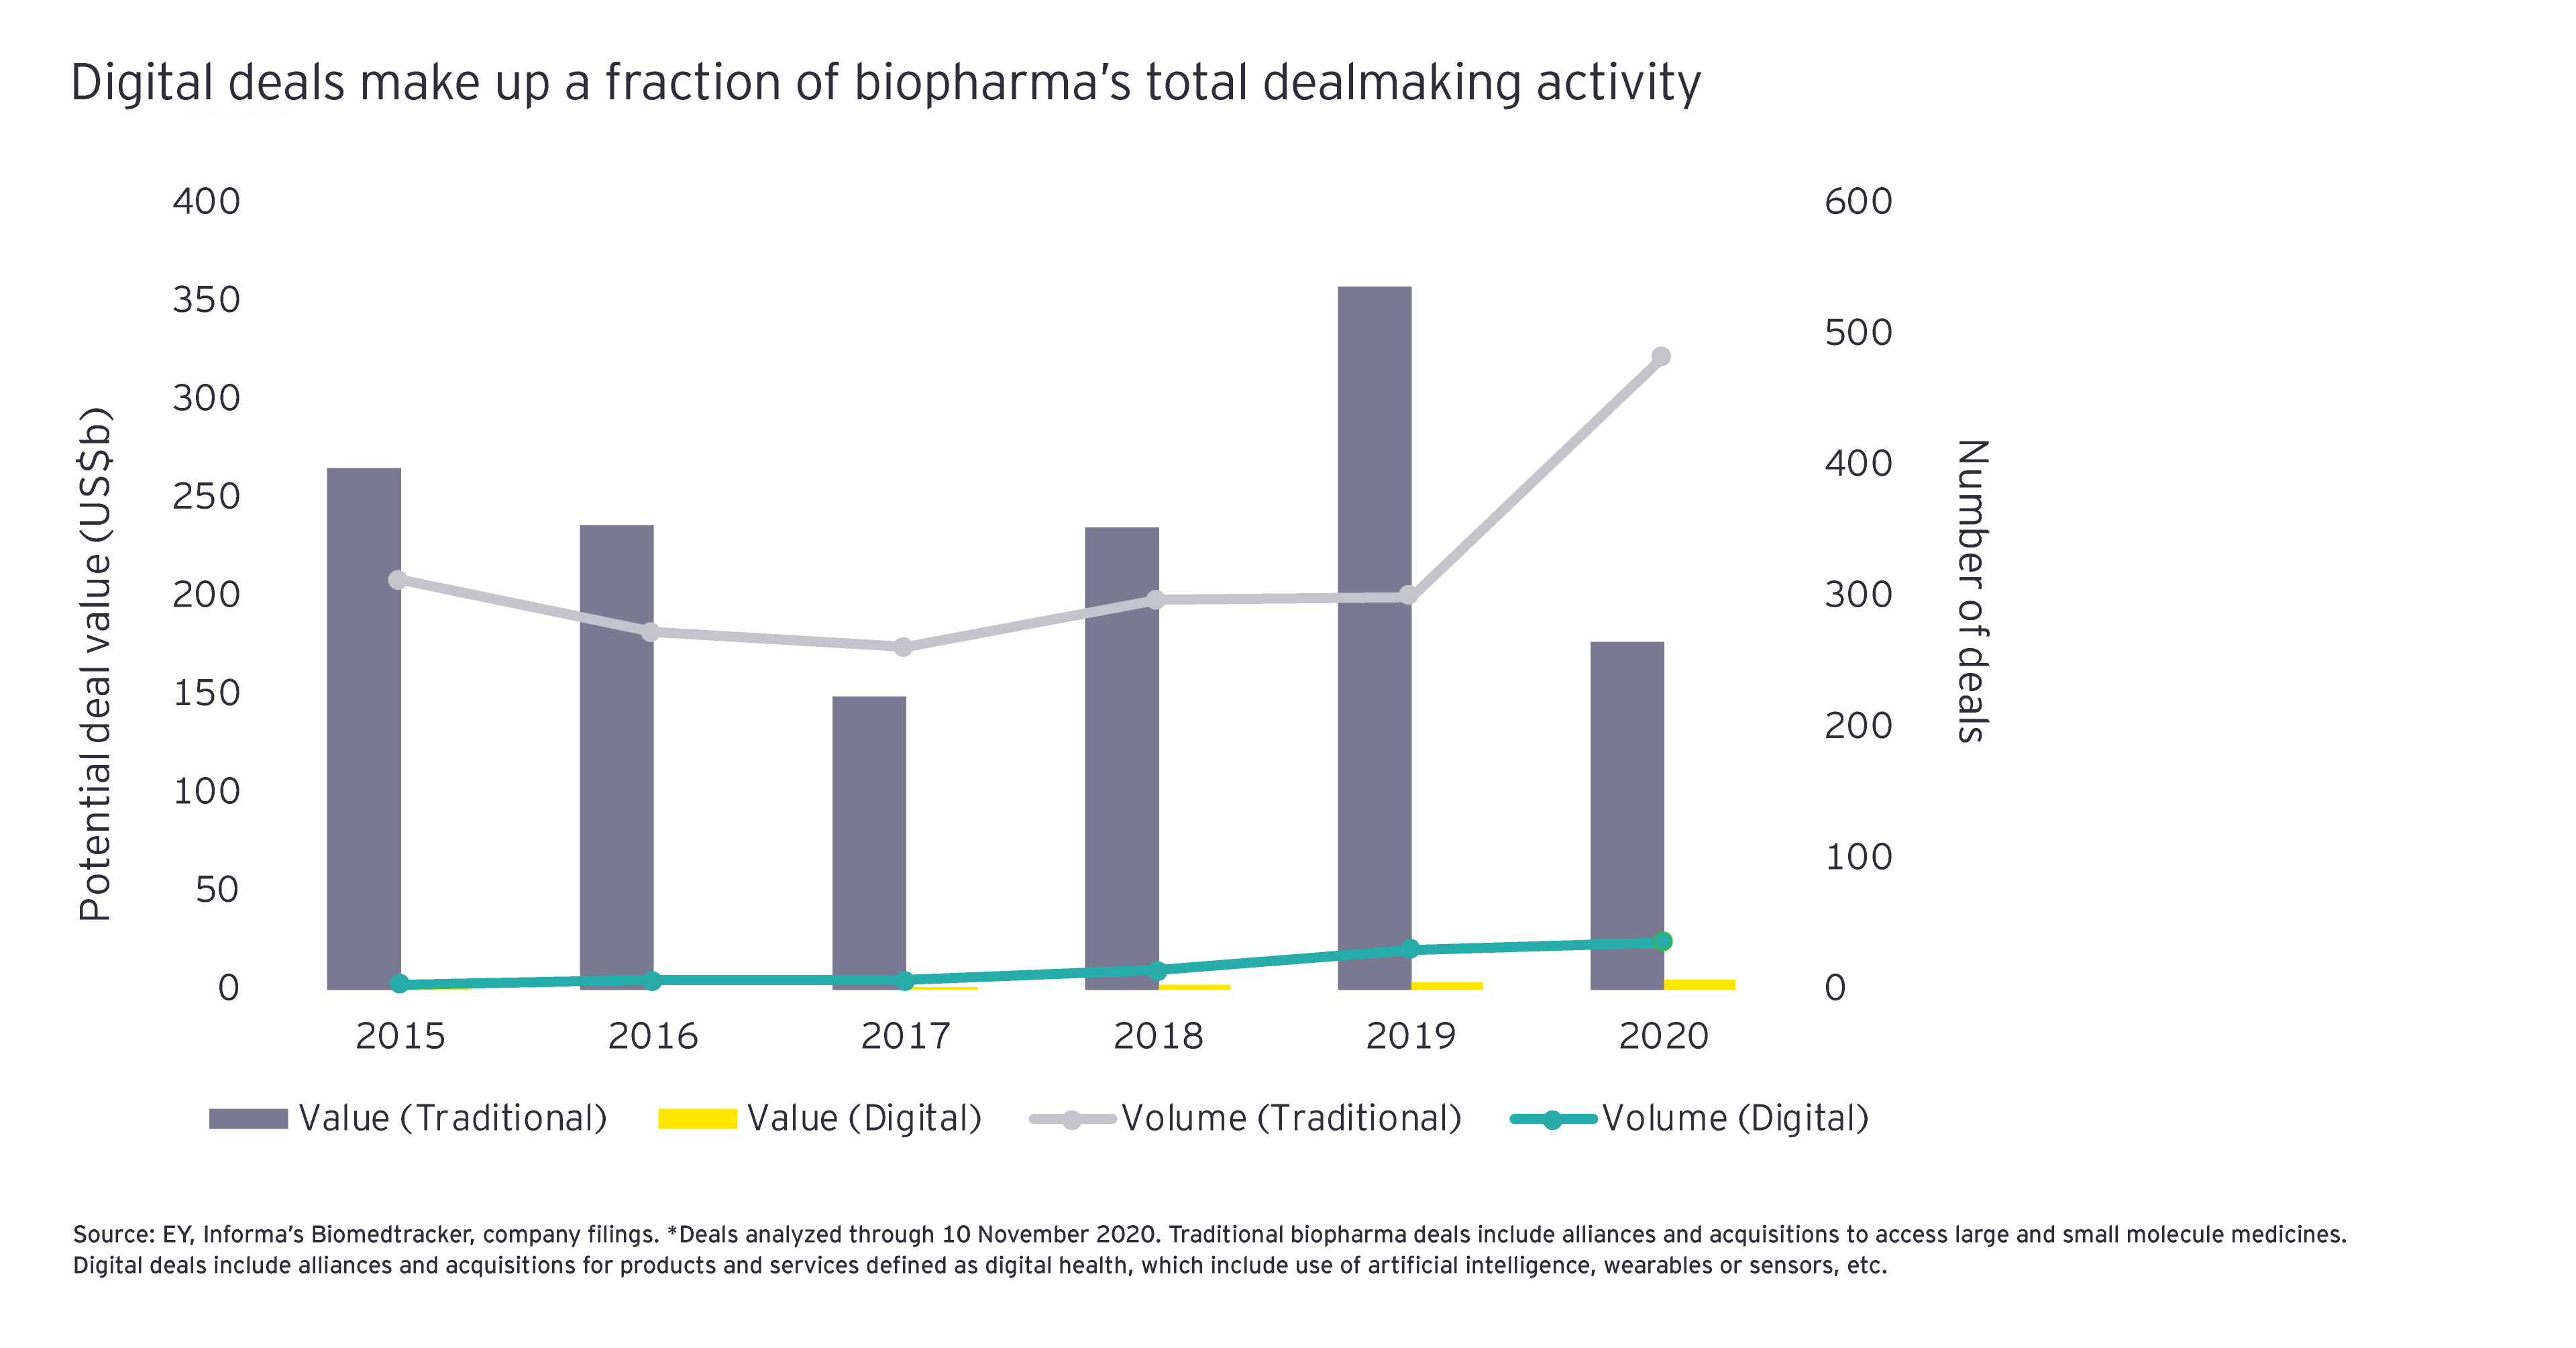 Firepower digital deals make fraction biopharma total dealmaking activity